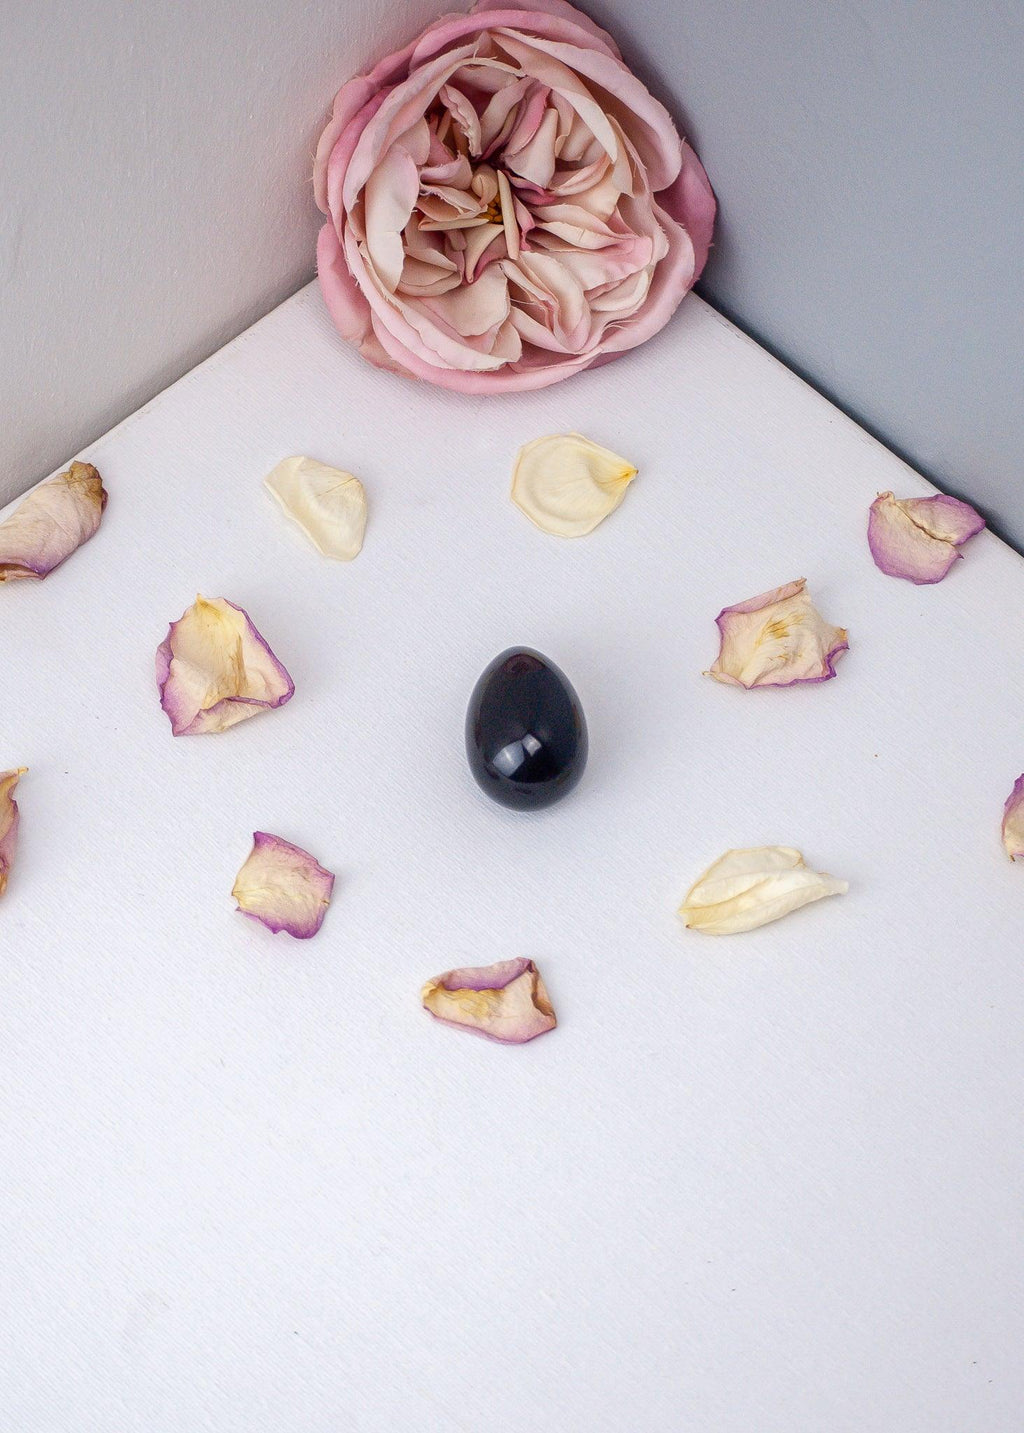 Obsidian Yoni Egg, Crystal Gemstone Healing, Kegel Muscle and Pelvic Floor Training, Single Drilled or Undrilled Yoni Egg